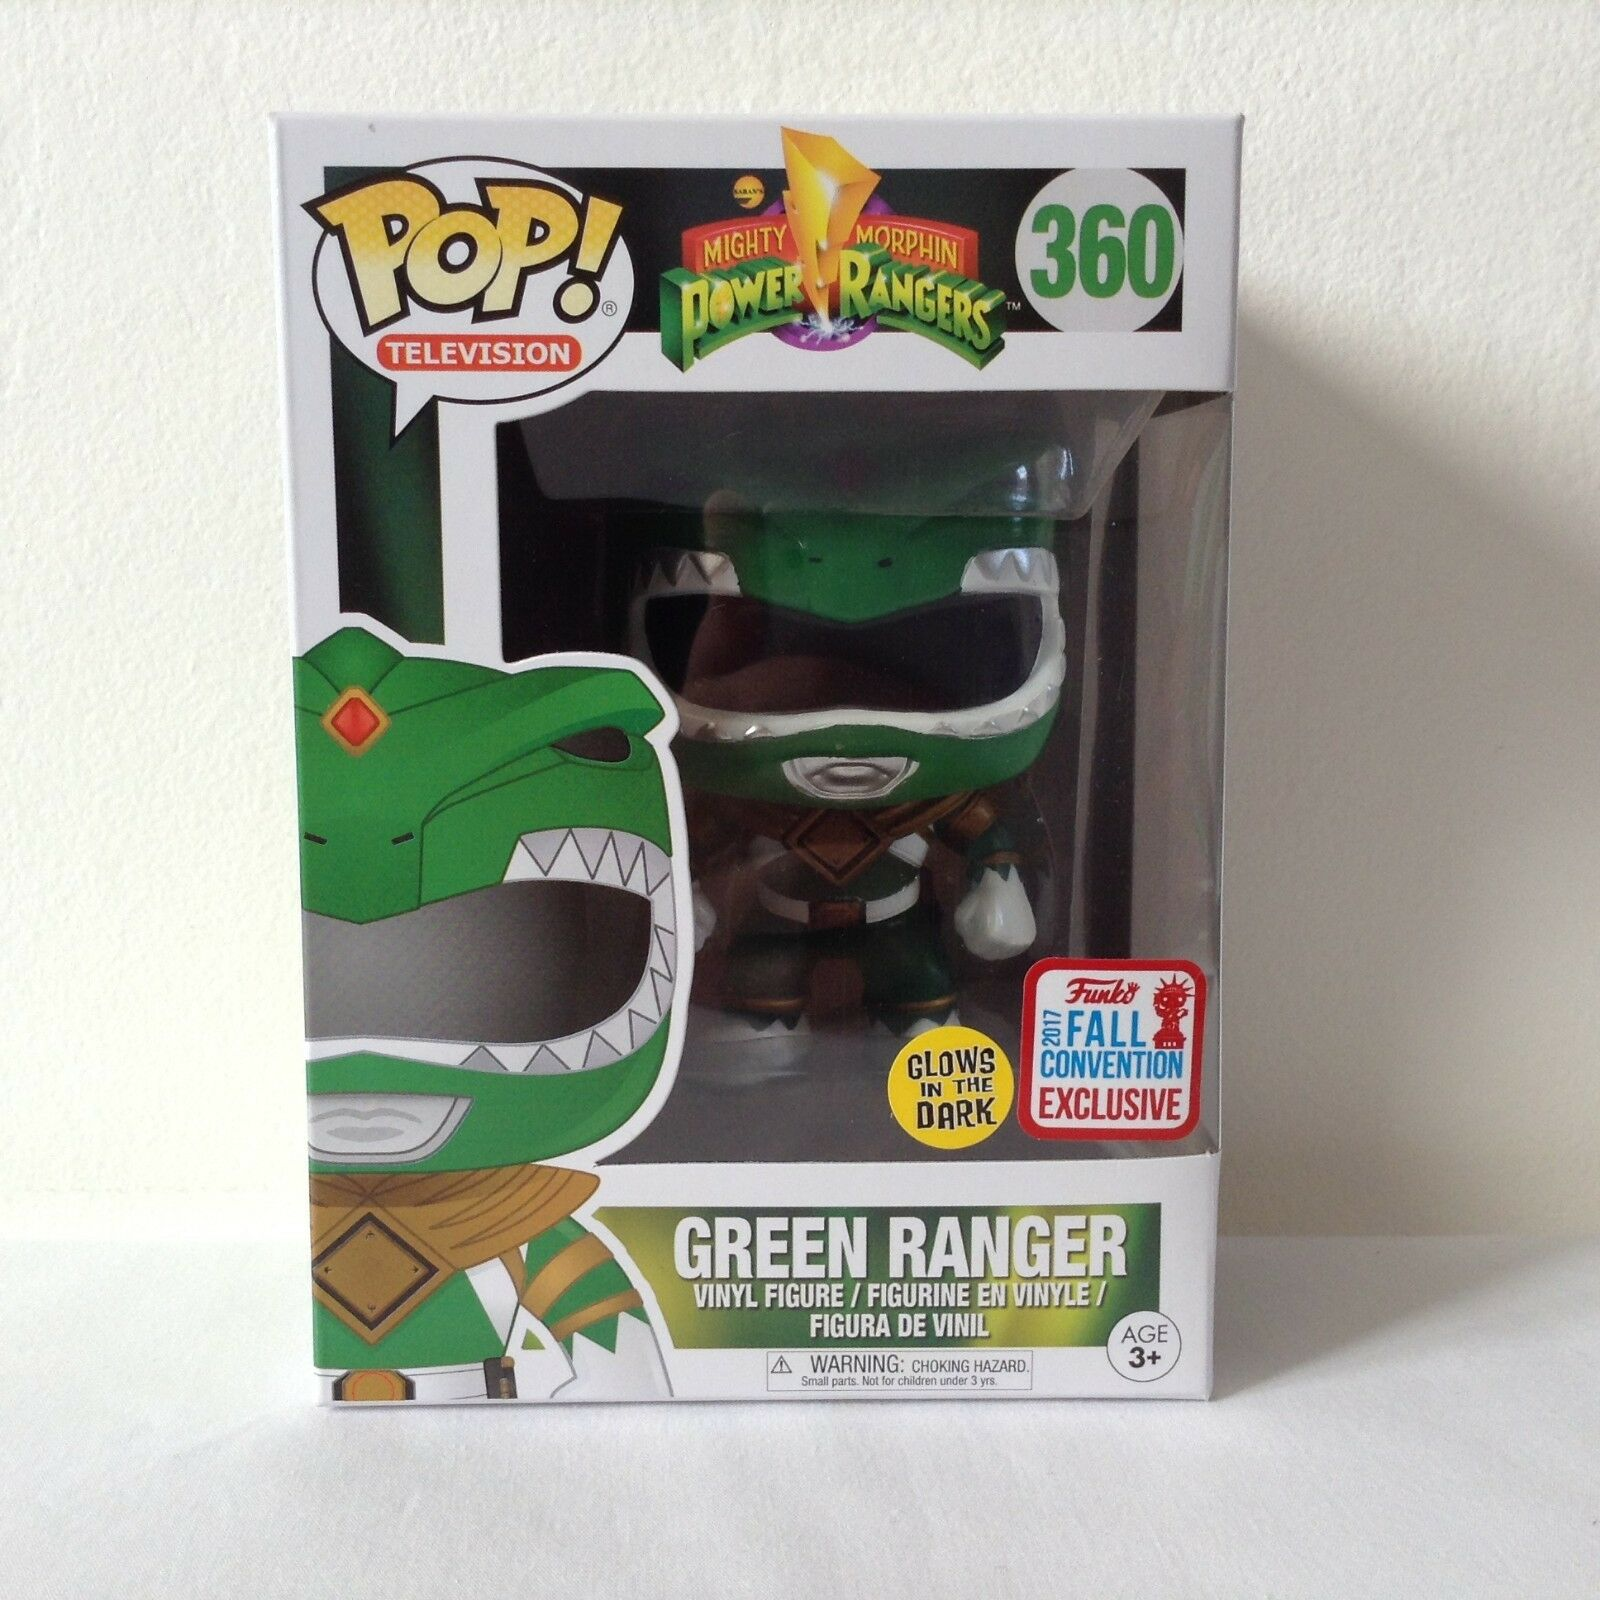 POWER RANGERS METALLIC Grün NYCC 2017 FUNKO POP  VINYL FIGURE - LIMITED EDITION